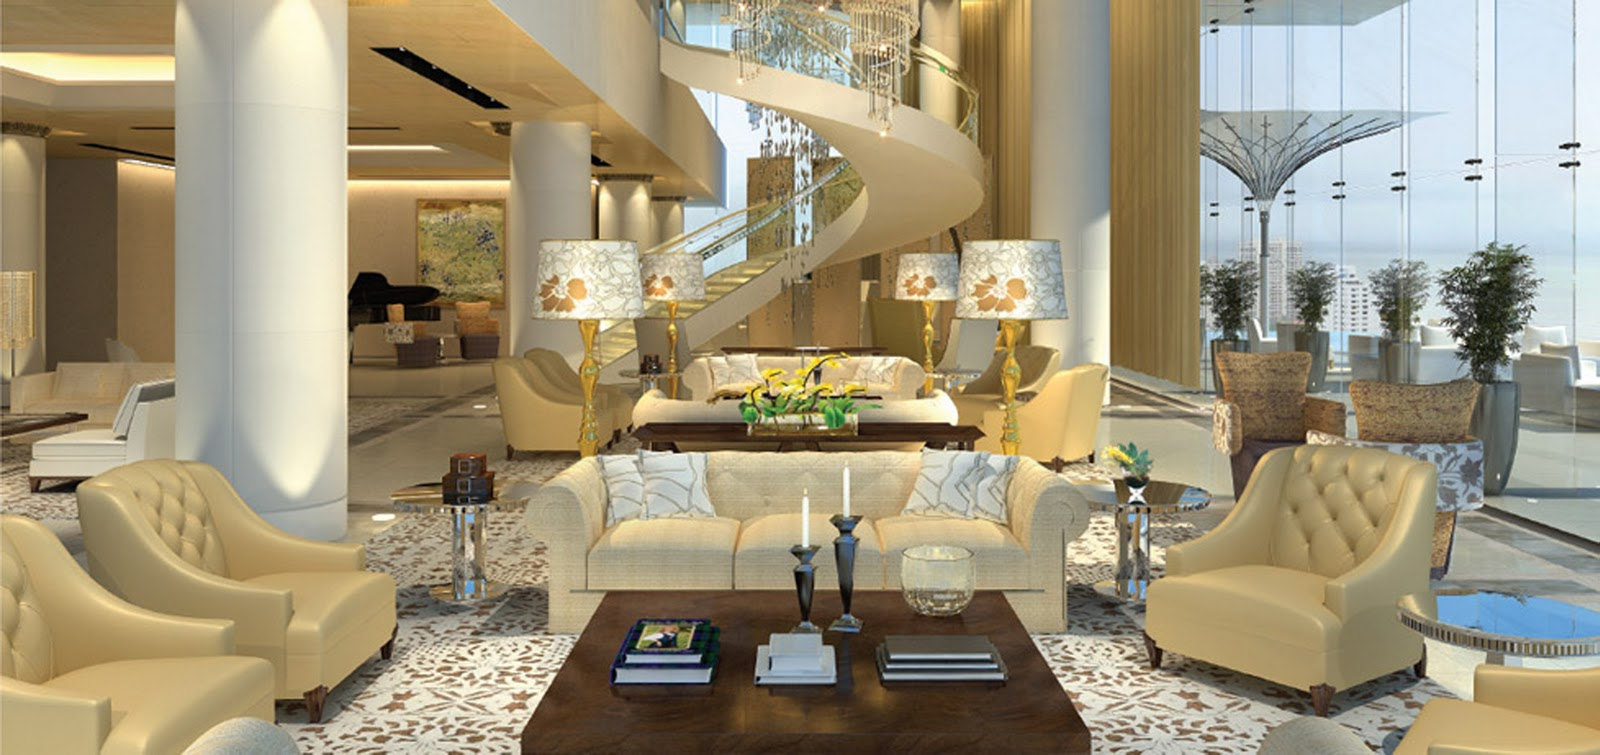 ... Lakshmi Mittal House Interior. Most Expensive Billionaire Homes In The  World Xdailycom